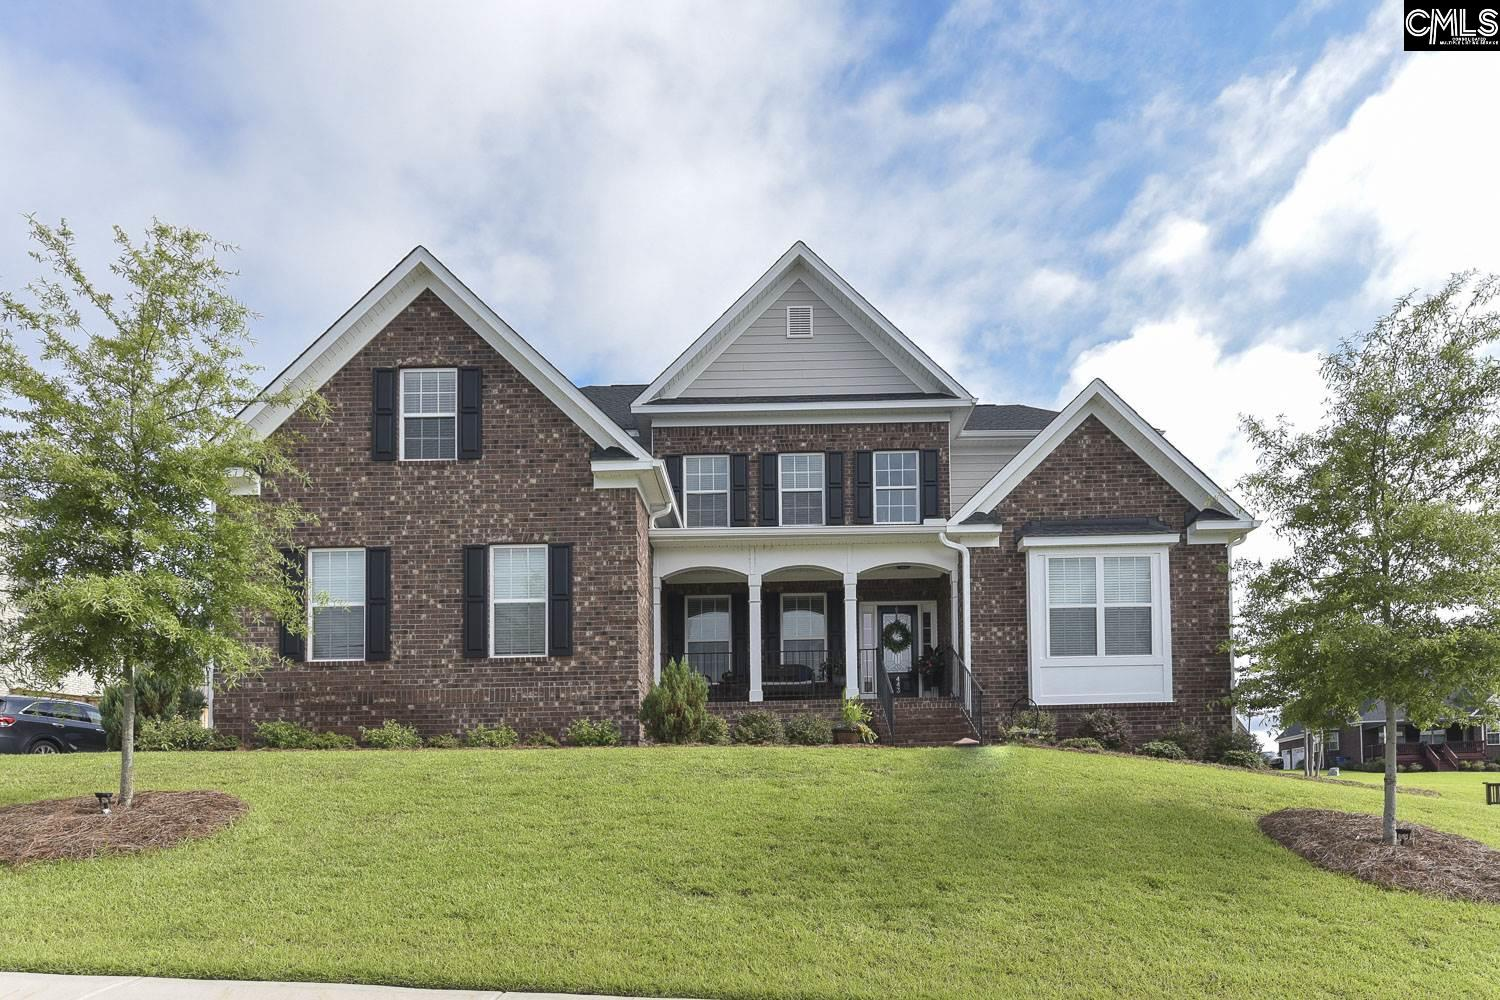 443 Palm Sedge Elgin, SC 29045